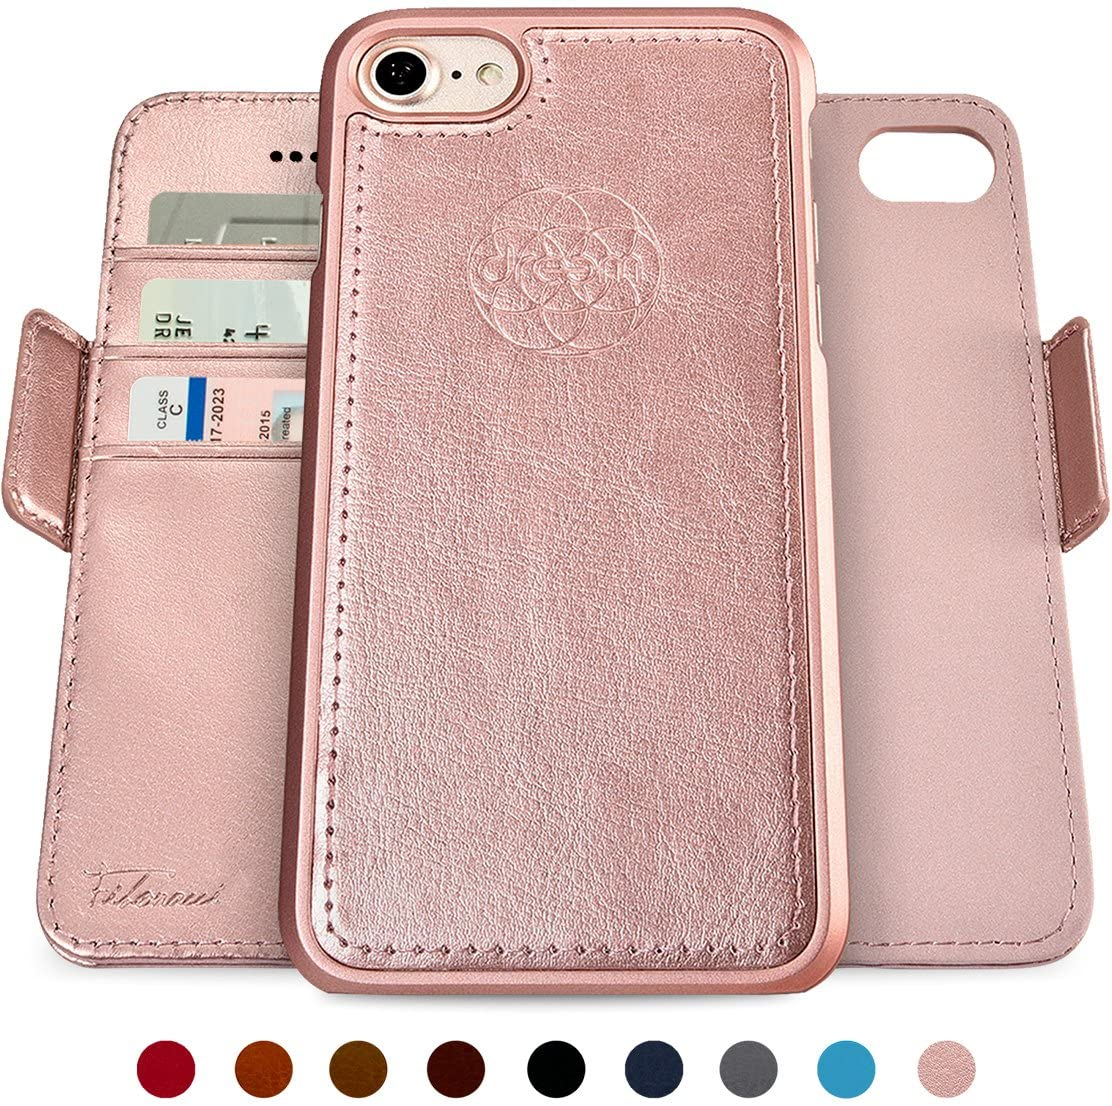 Dreem Fibonacci 2-in-1 Wallet-Case for iPhone SE 2020 iPhone 8/7, Magnetic Detachable Shock-Proof TPU Slim-Case, RFID Protection, 2-Way Stand, Luxury Vegan Leather, GiftBox - Rose-Gold